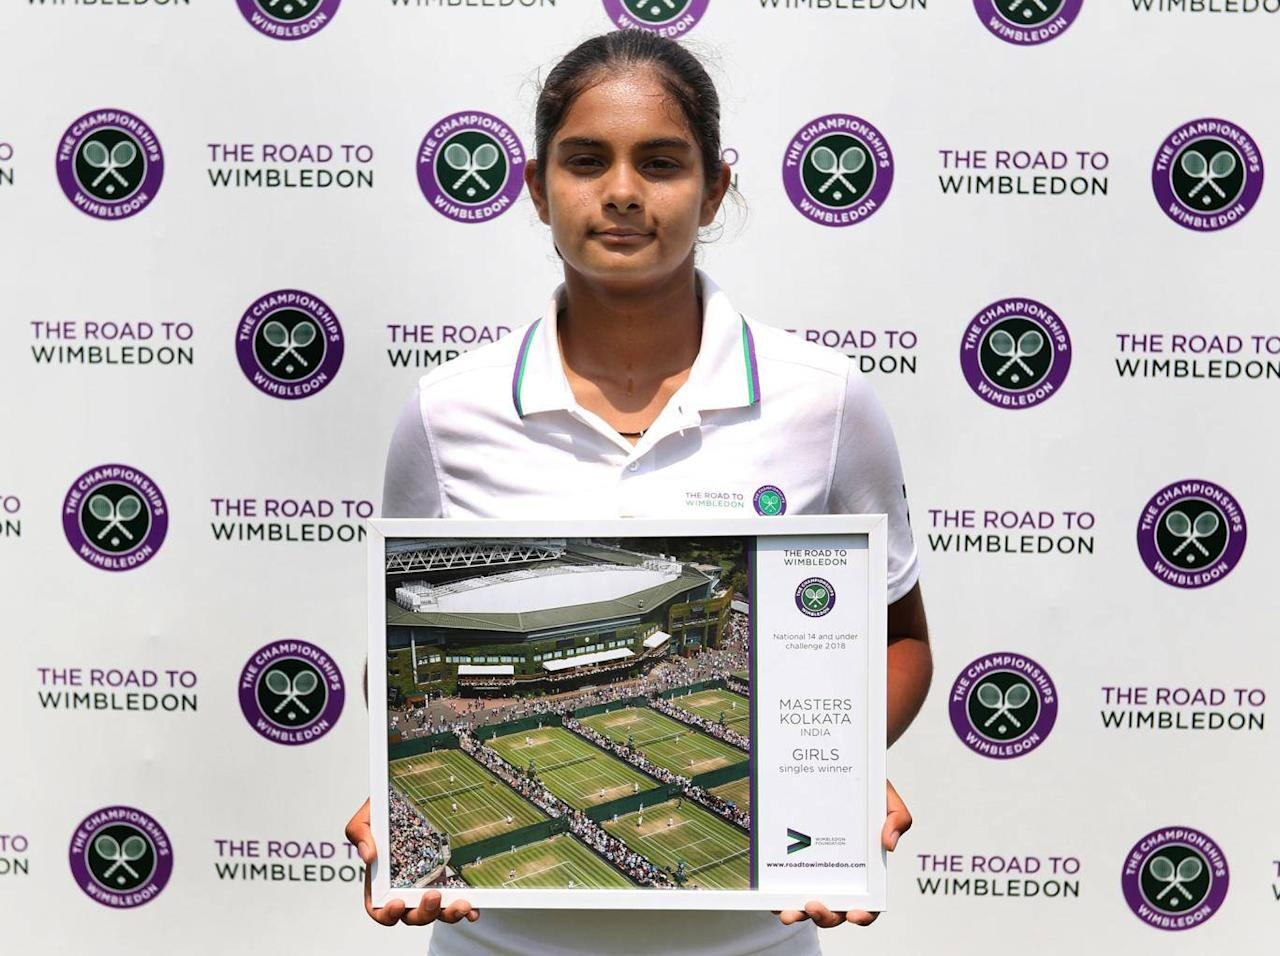 How the road to Wimbledon has already started and offers tennis' very own winning lottery ticket